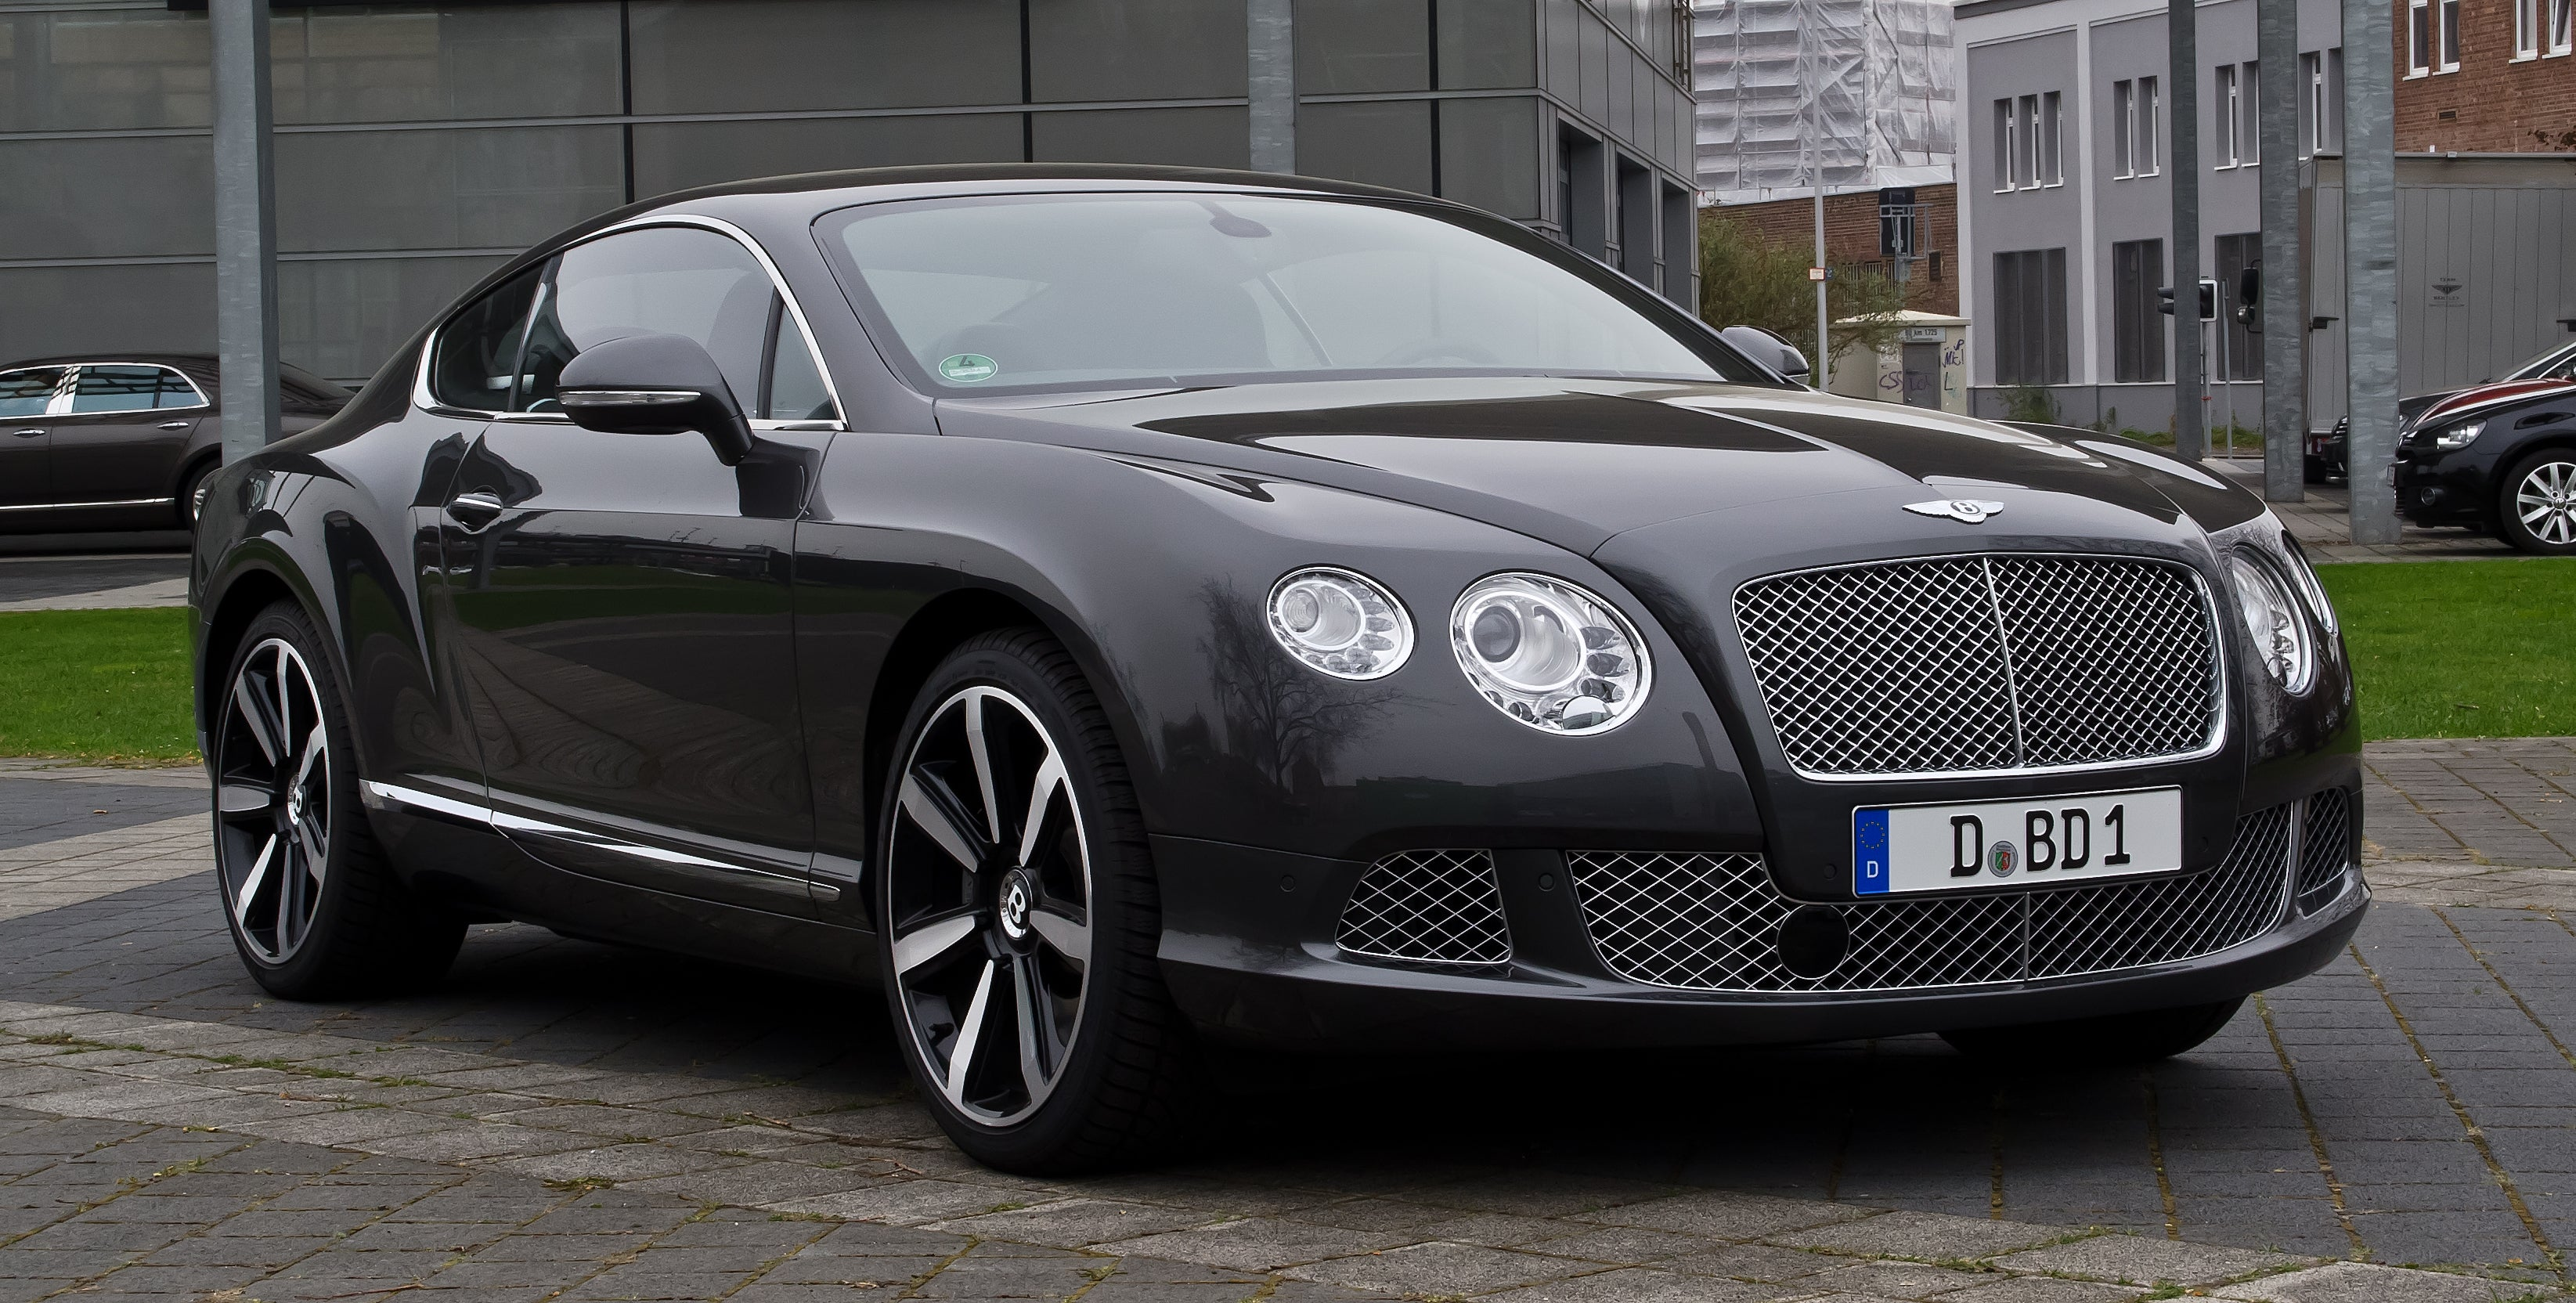 saw a bentley continental gt in the wild yesterday. Black Bedroom Furniture Sets. Home Design Ideas